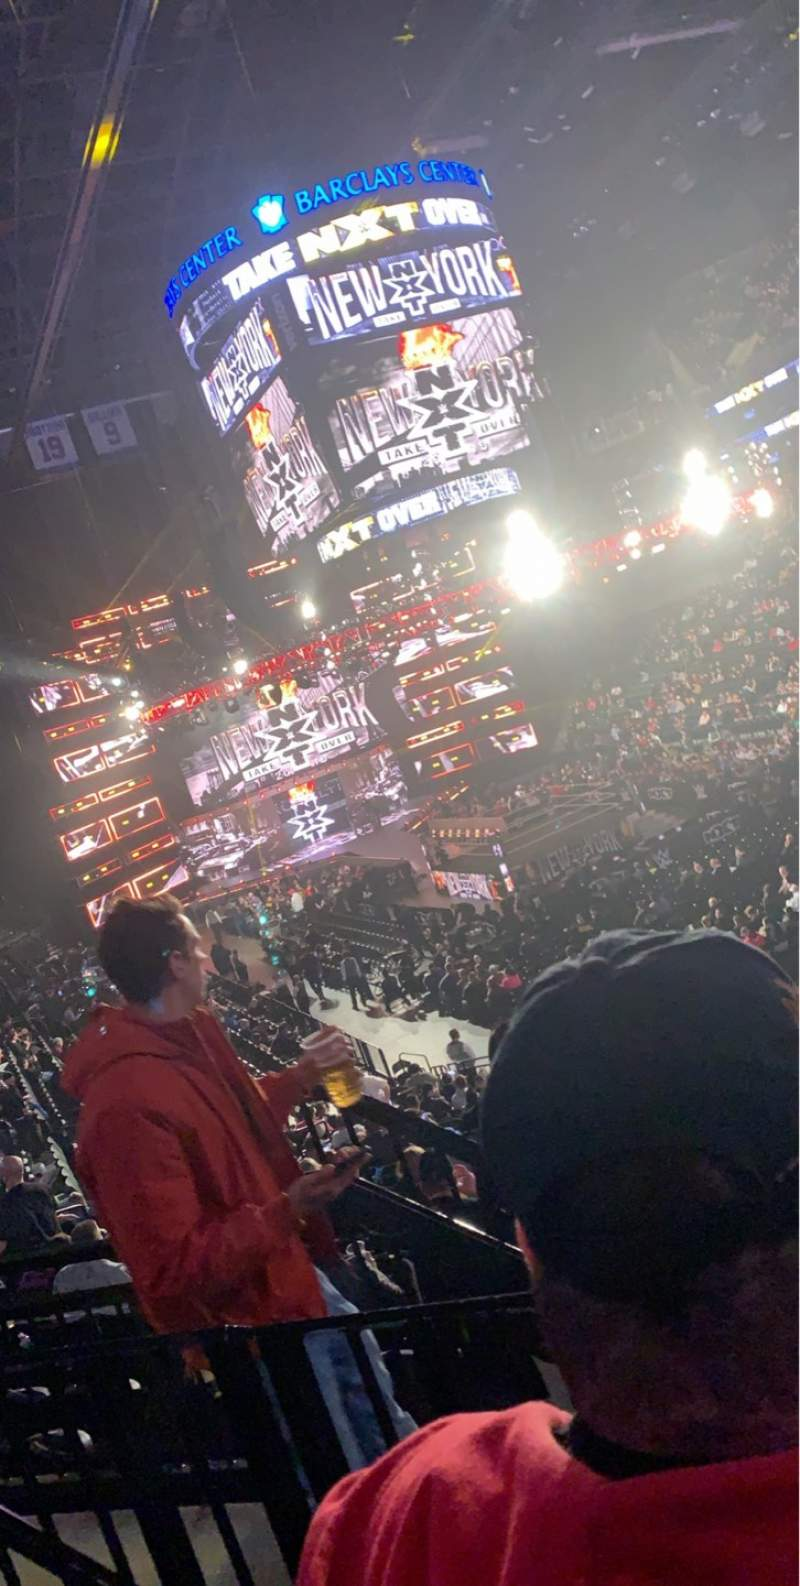 Seating view for Barclays Center Section 118 Row 5 Seat 5